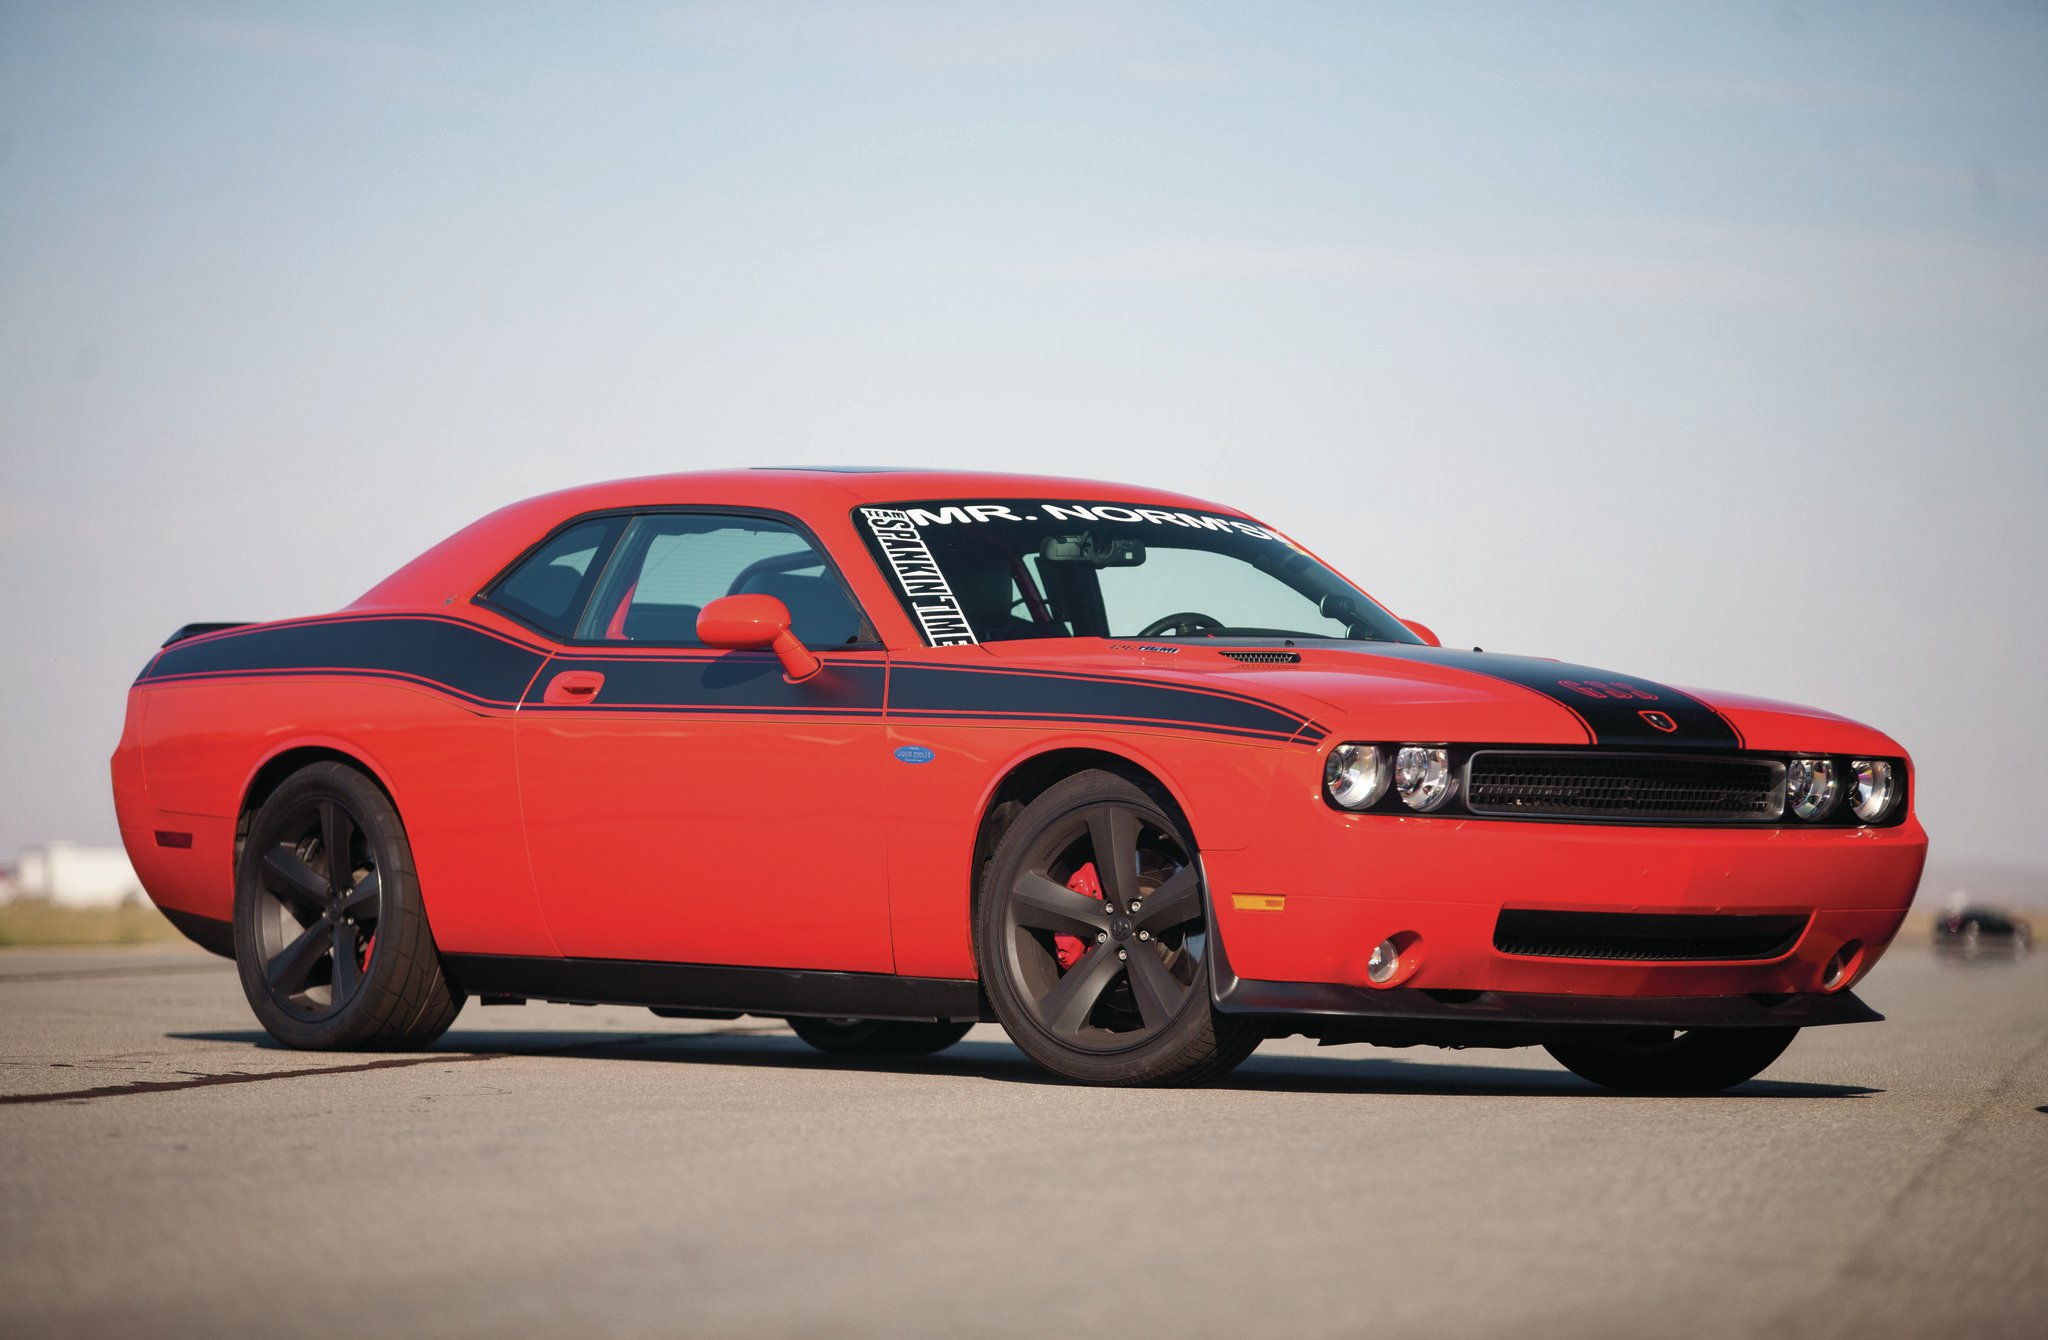 Late-model Challengers are popular at the Mojave Mile. At any given event, it seems you'll find at least a couple that are driven to the event, run in the neighborhood of 200 mph, and drive home.